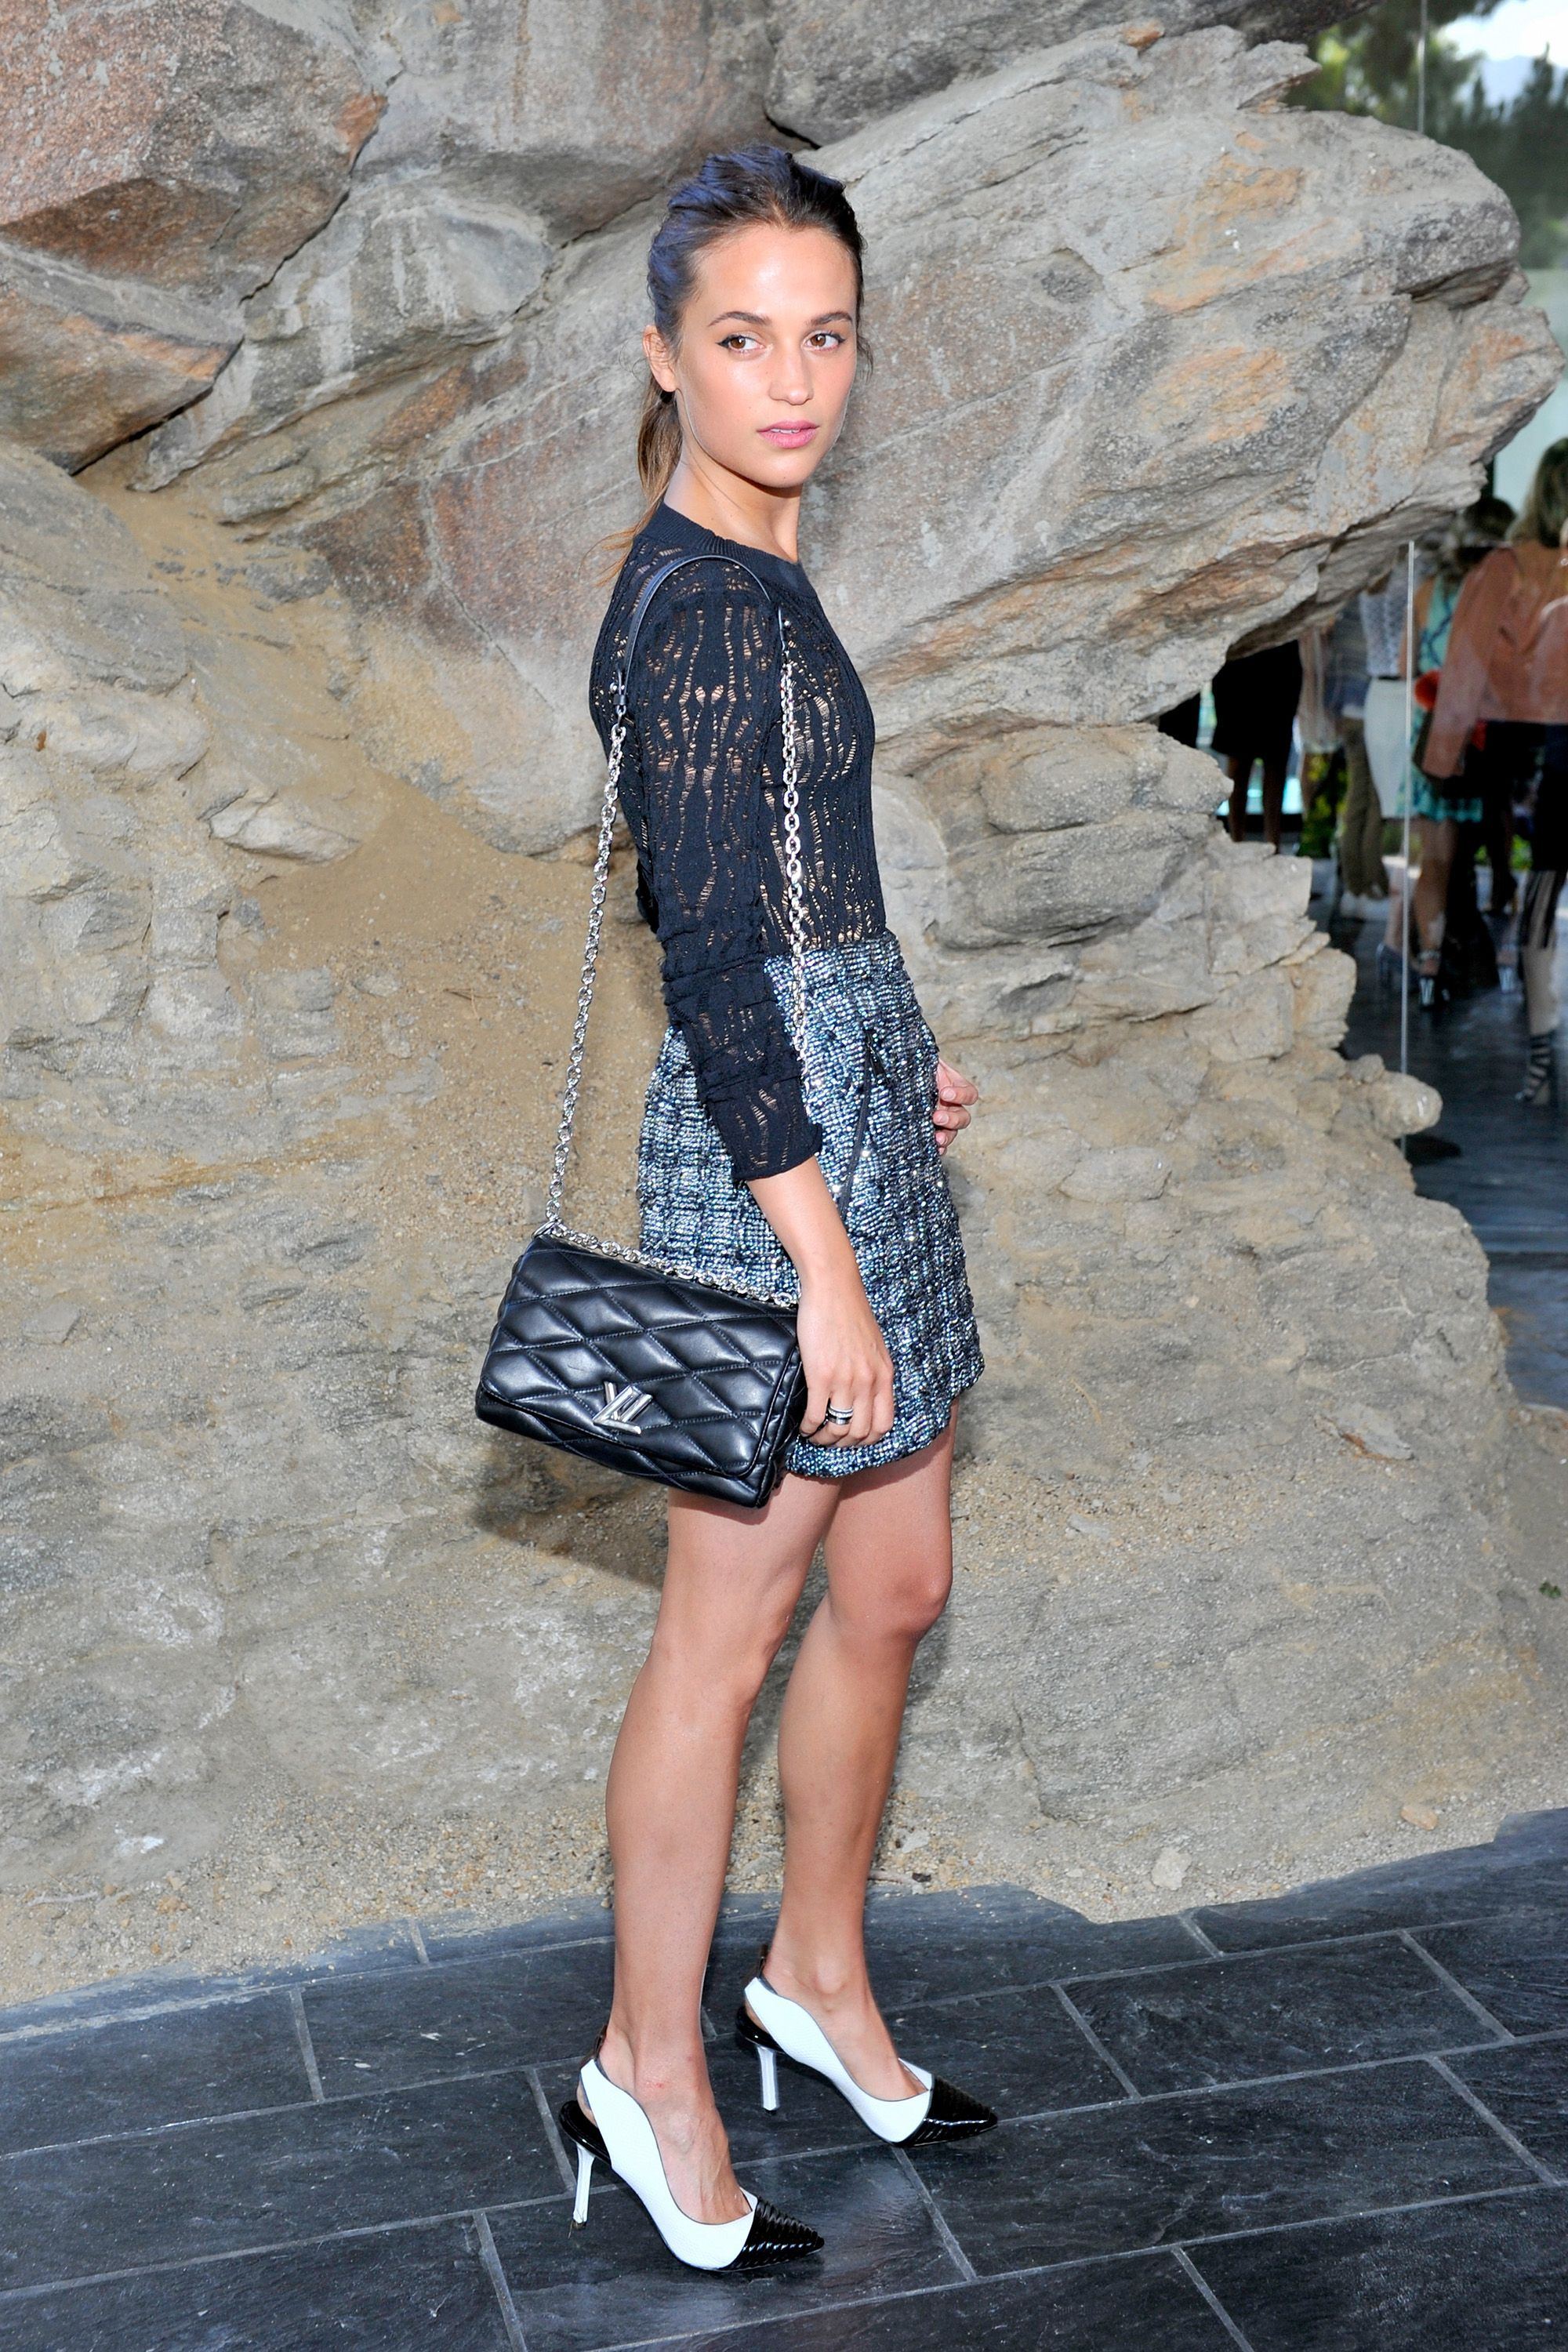 PALM SPRINGS, CA - MAY 06:  Actress Alicia Vikander attends the Louis Vuitton Cruise 2016 Resort Collection shown at a private residence on May 6, 2015 in Palm Springs, California.  (Photo by Donato Sardella/Getty Images for Louis Vuitton)